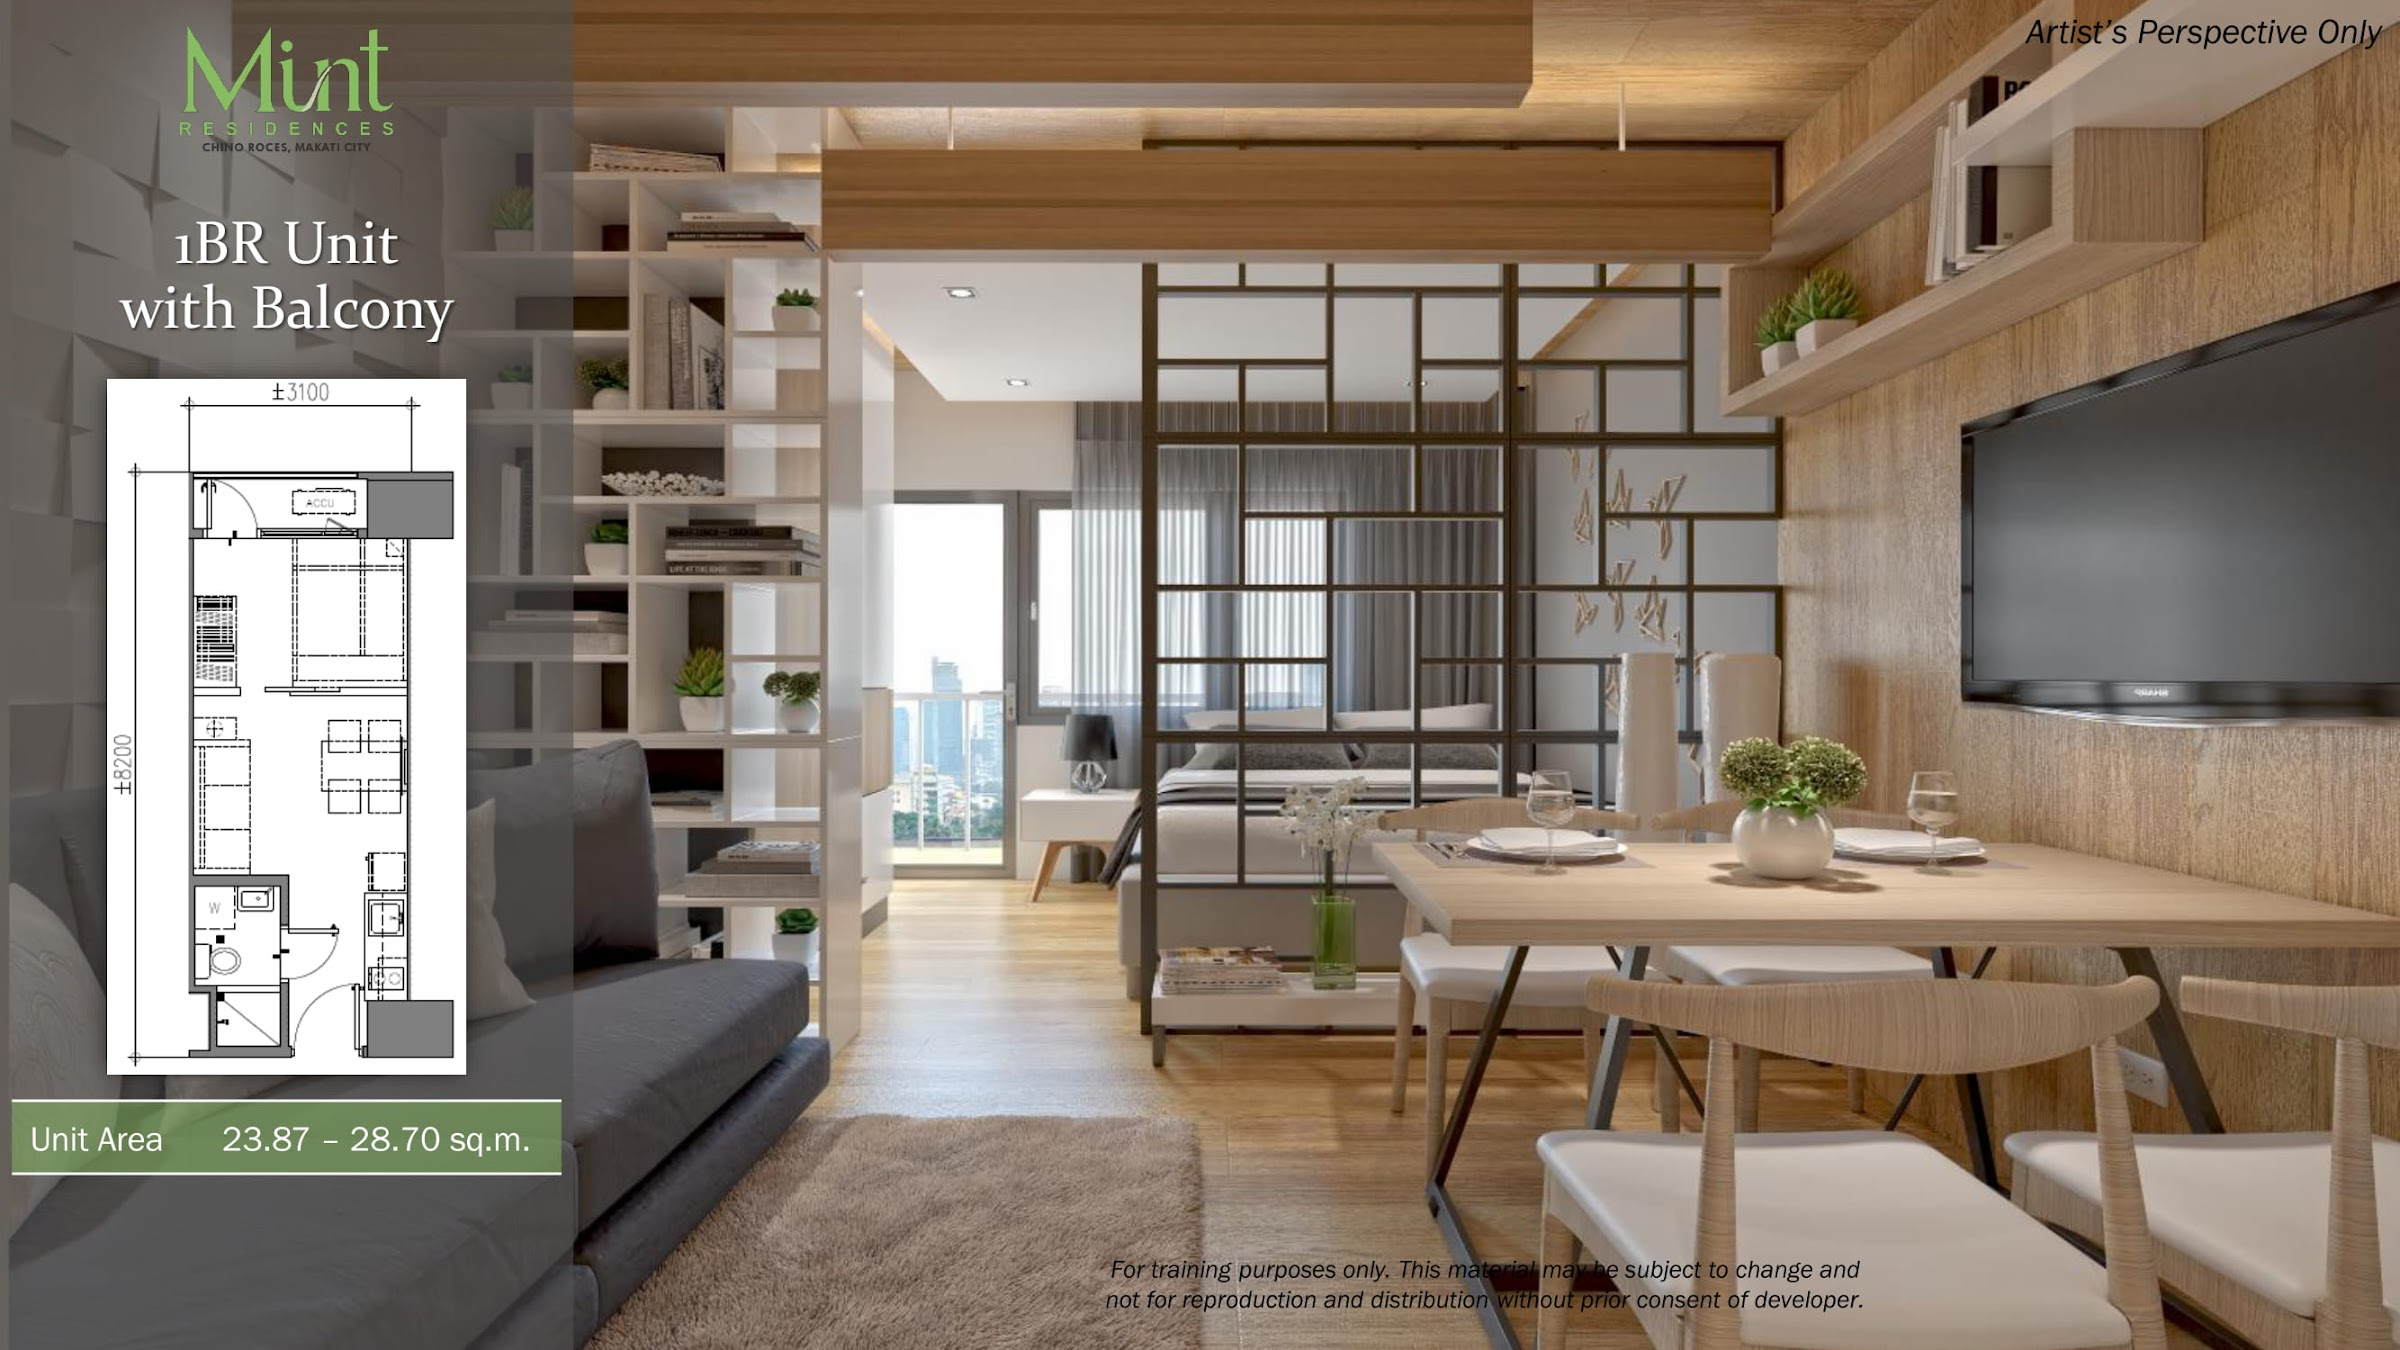 Mint Residences, Chino Roces Makati 1 bedroom with balcony